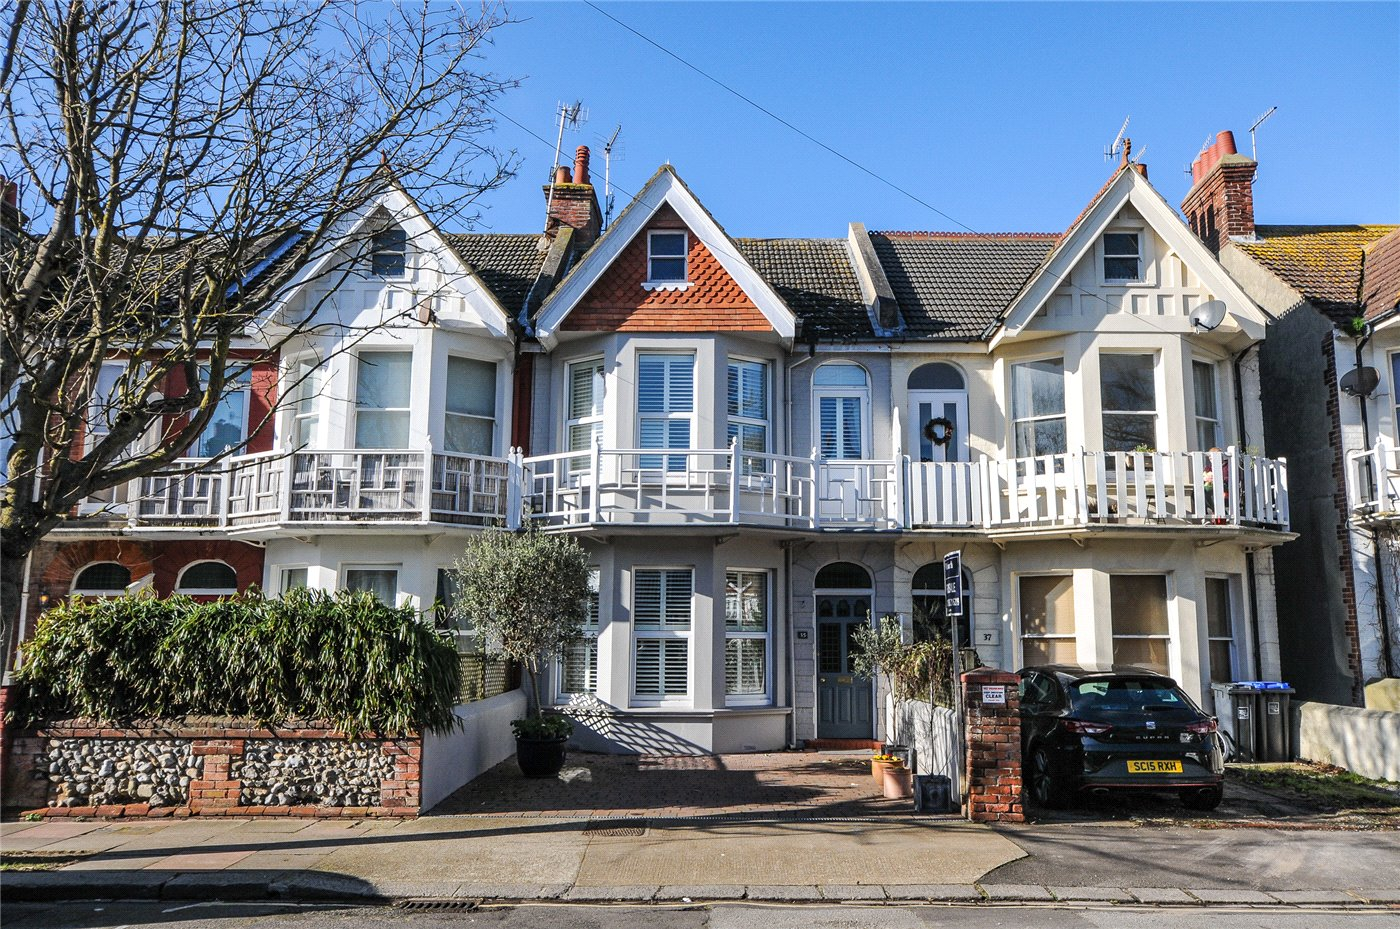 4 Bedroom Property For Sale In Alexandra Road Worthing